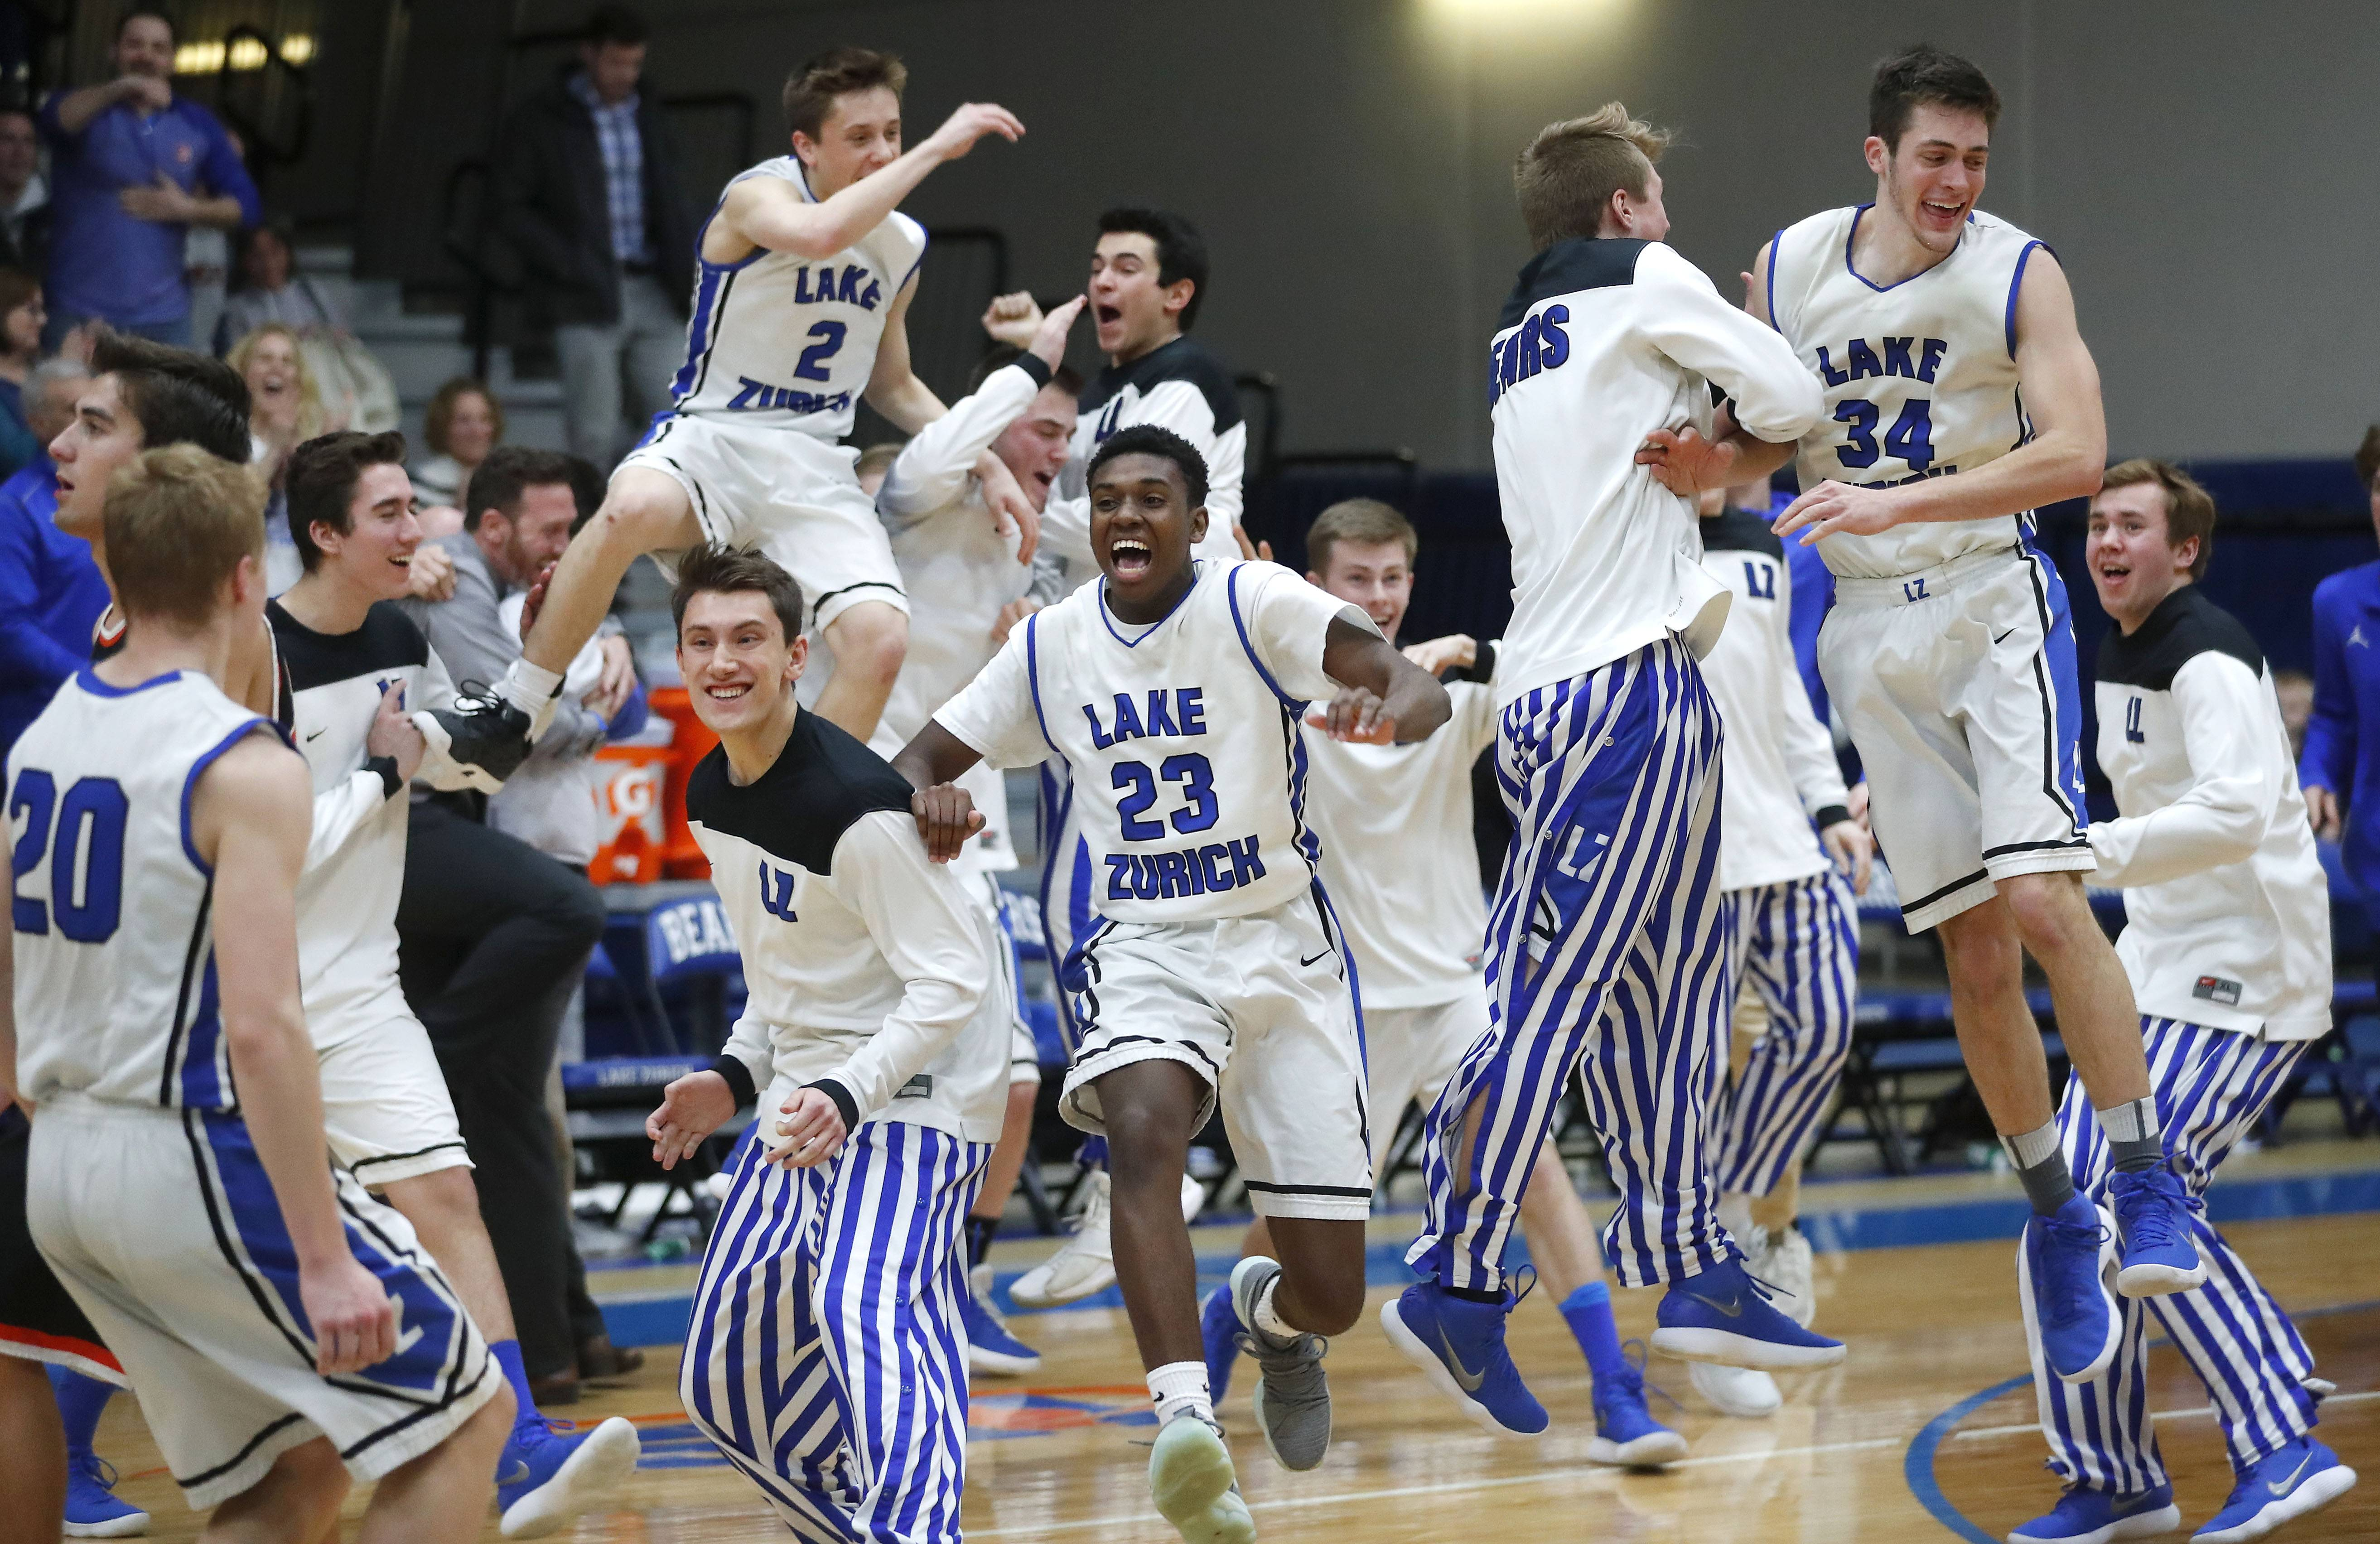 Lake Zurich players go crazy after beating Libertyville 54-50 in the Class 4A sectional semifinal at Lake Zurich High School on Tuesday.